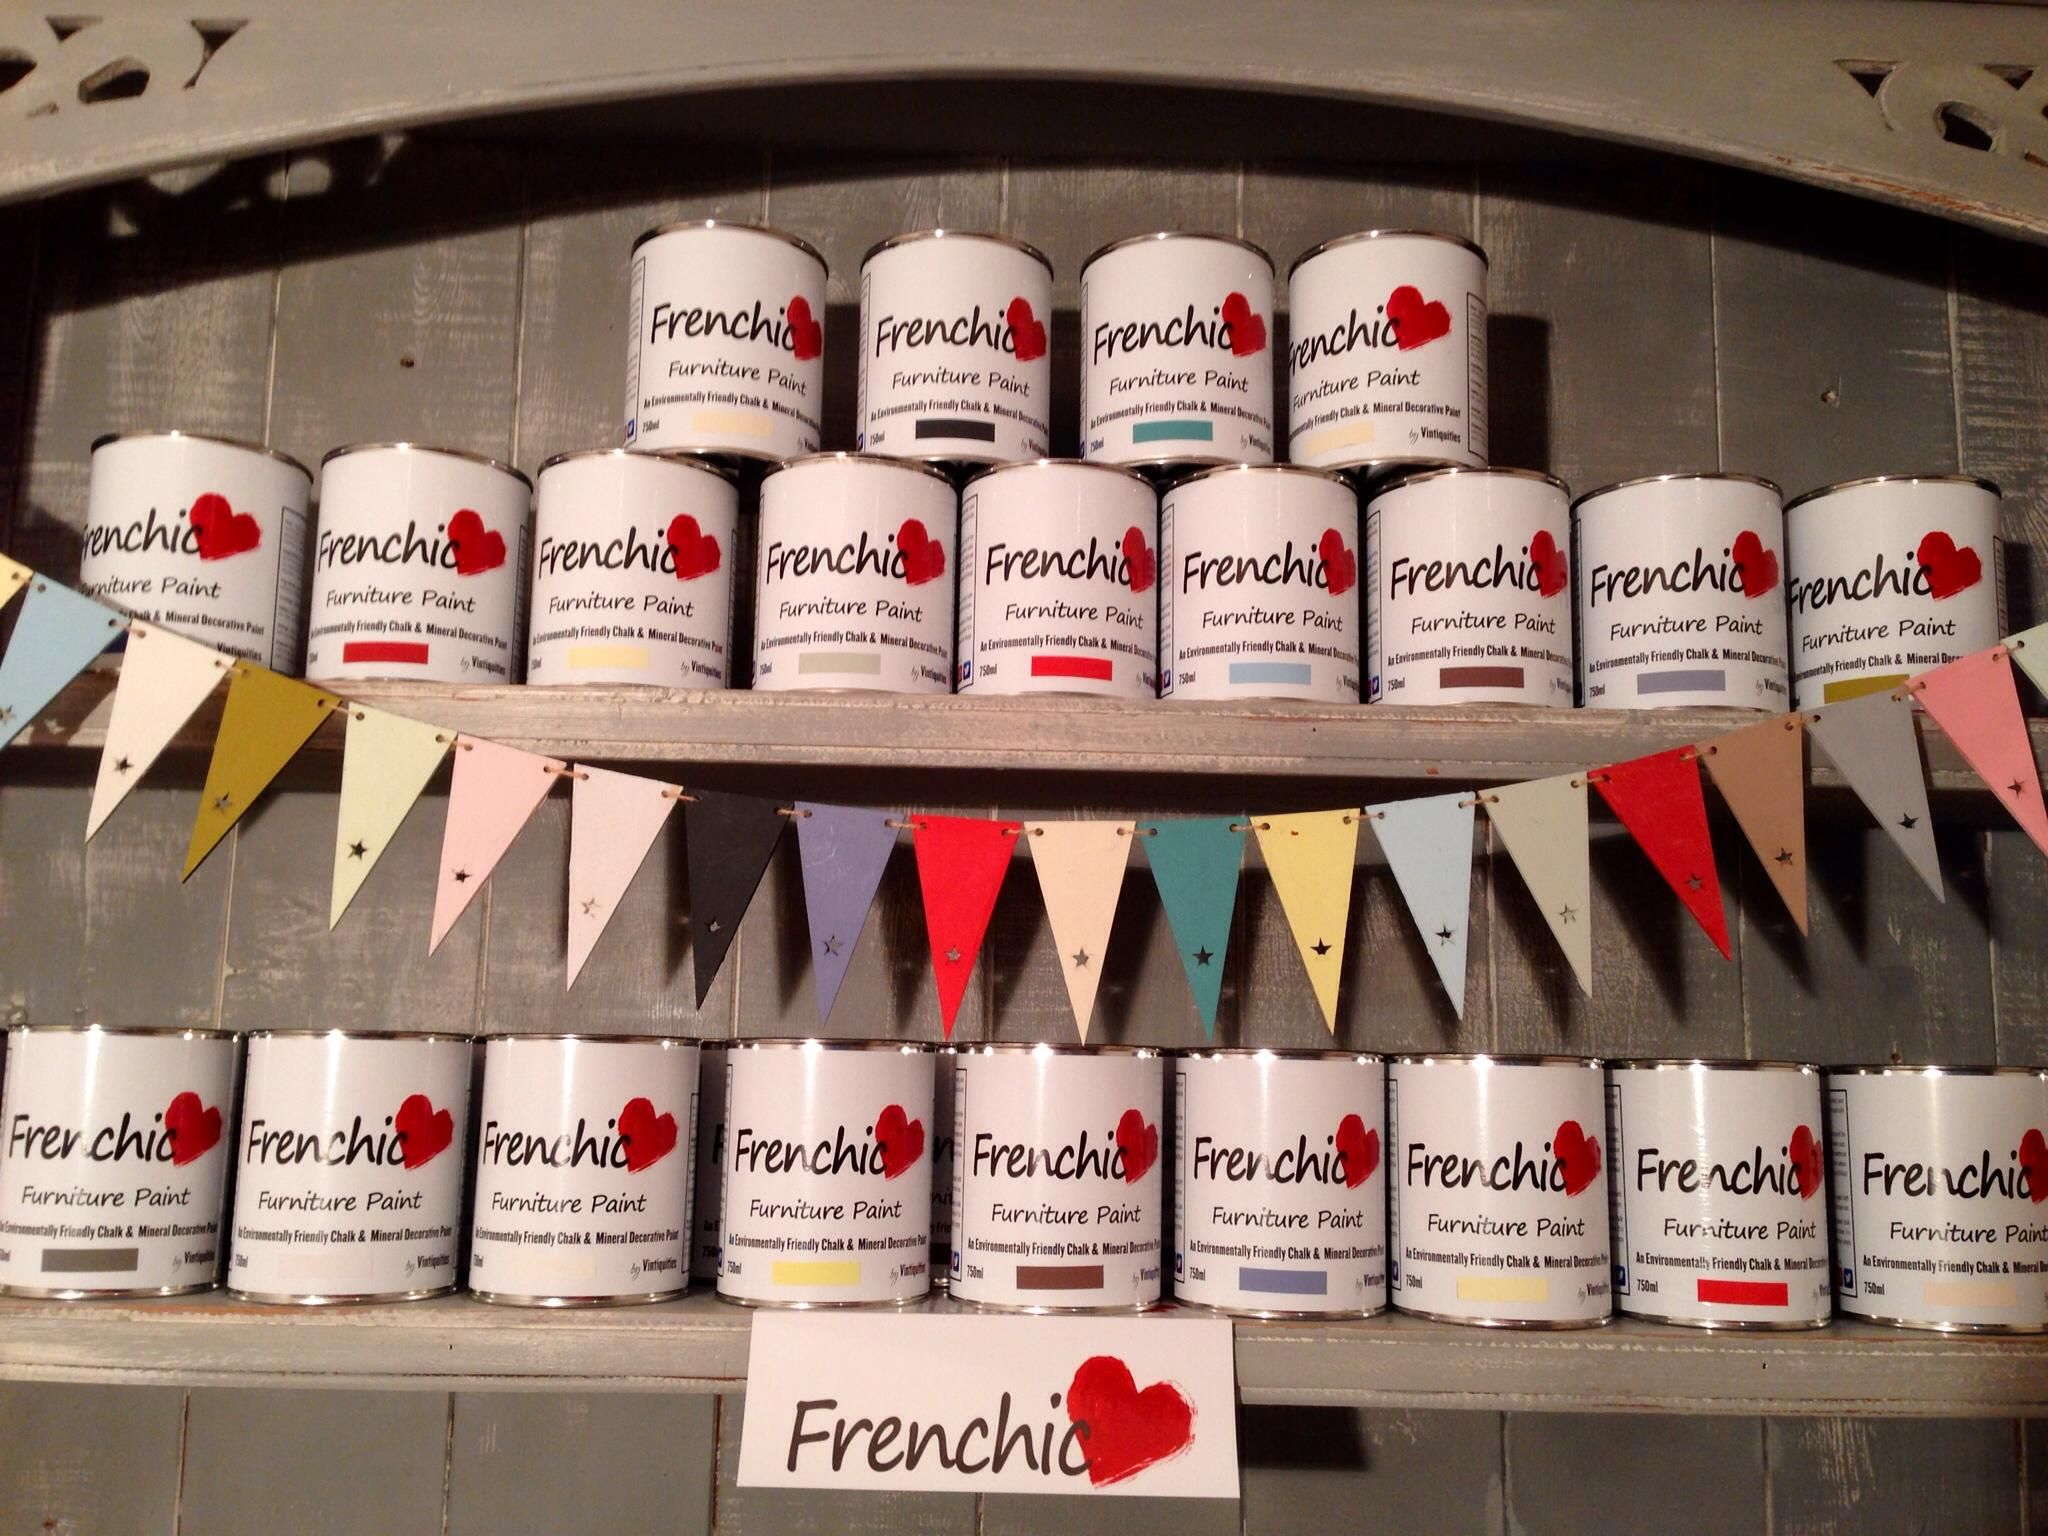 the frenchic furniture paint online store is now open for business